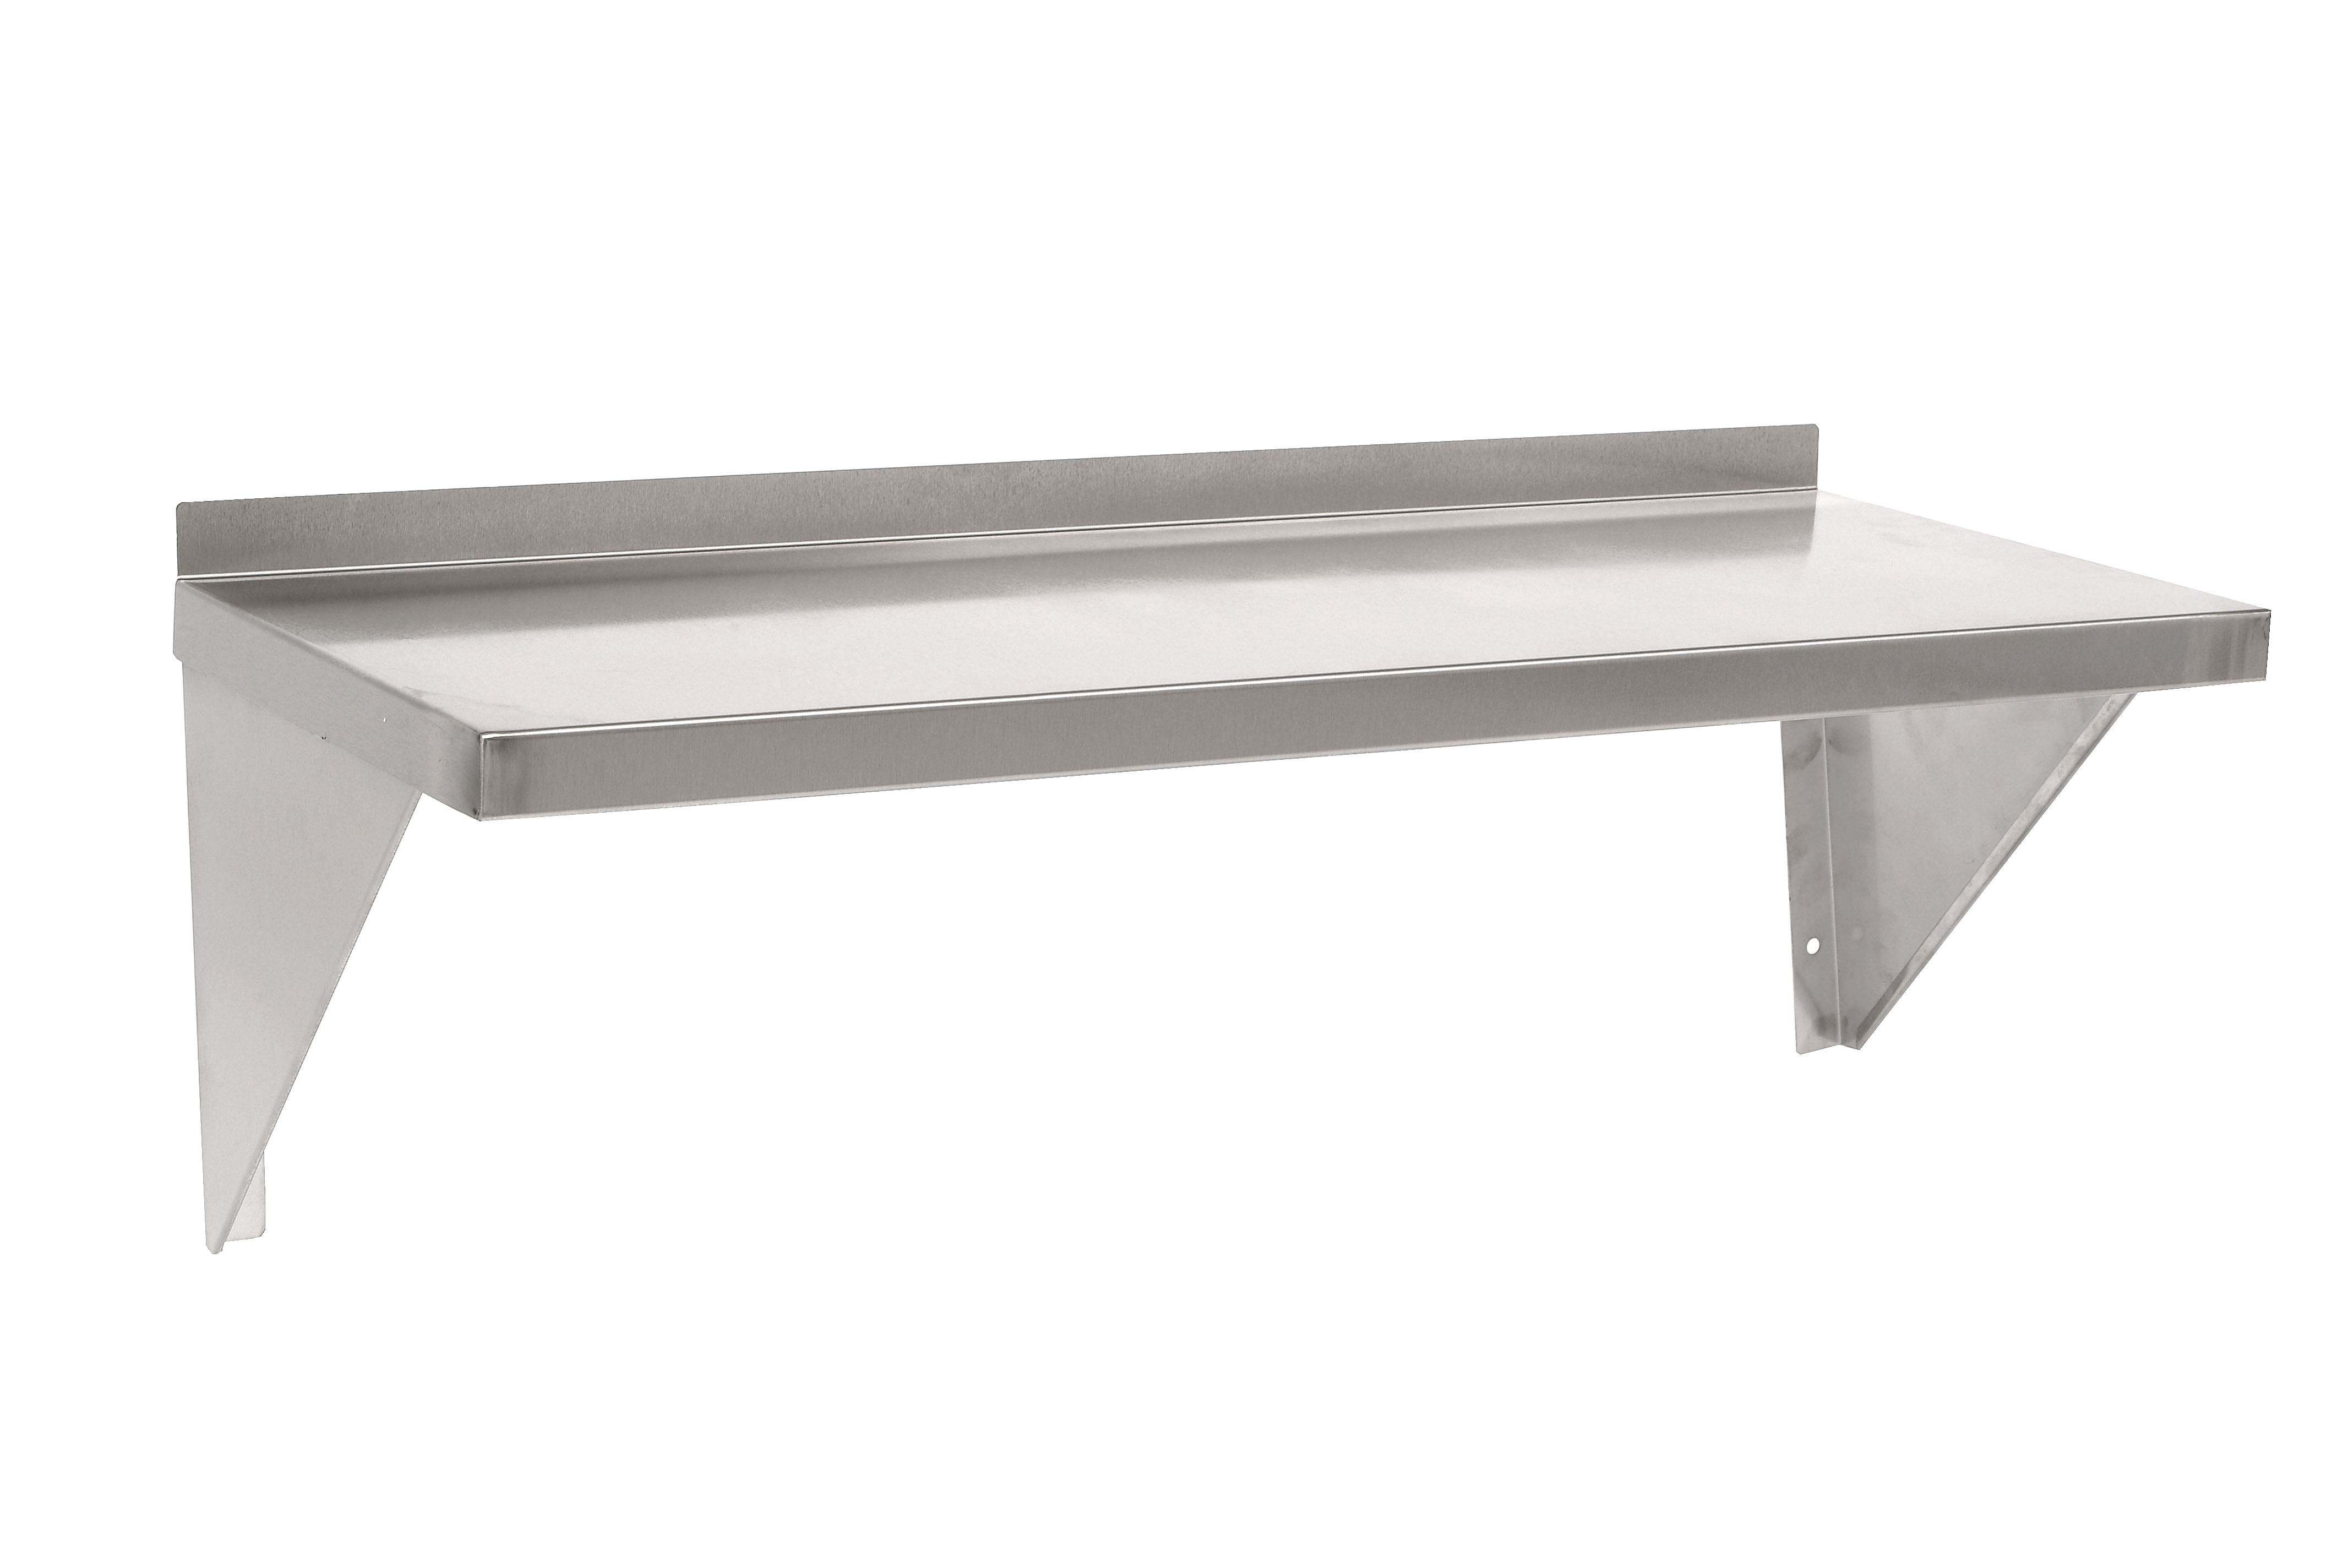 Stainless Steel Storage Wall Shelves Shelf3w Parry